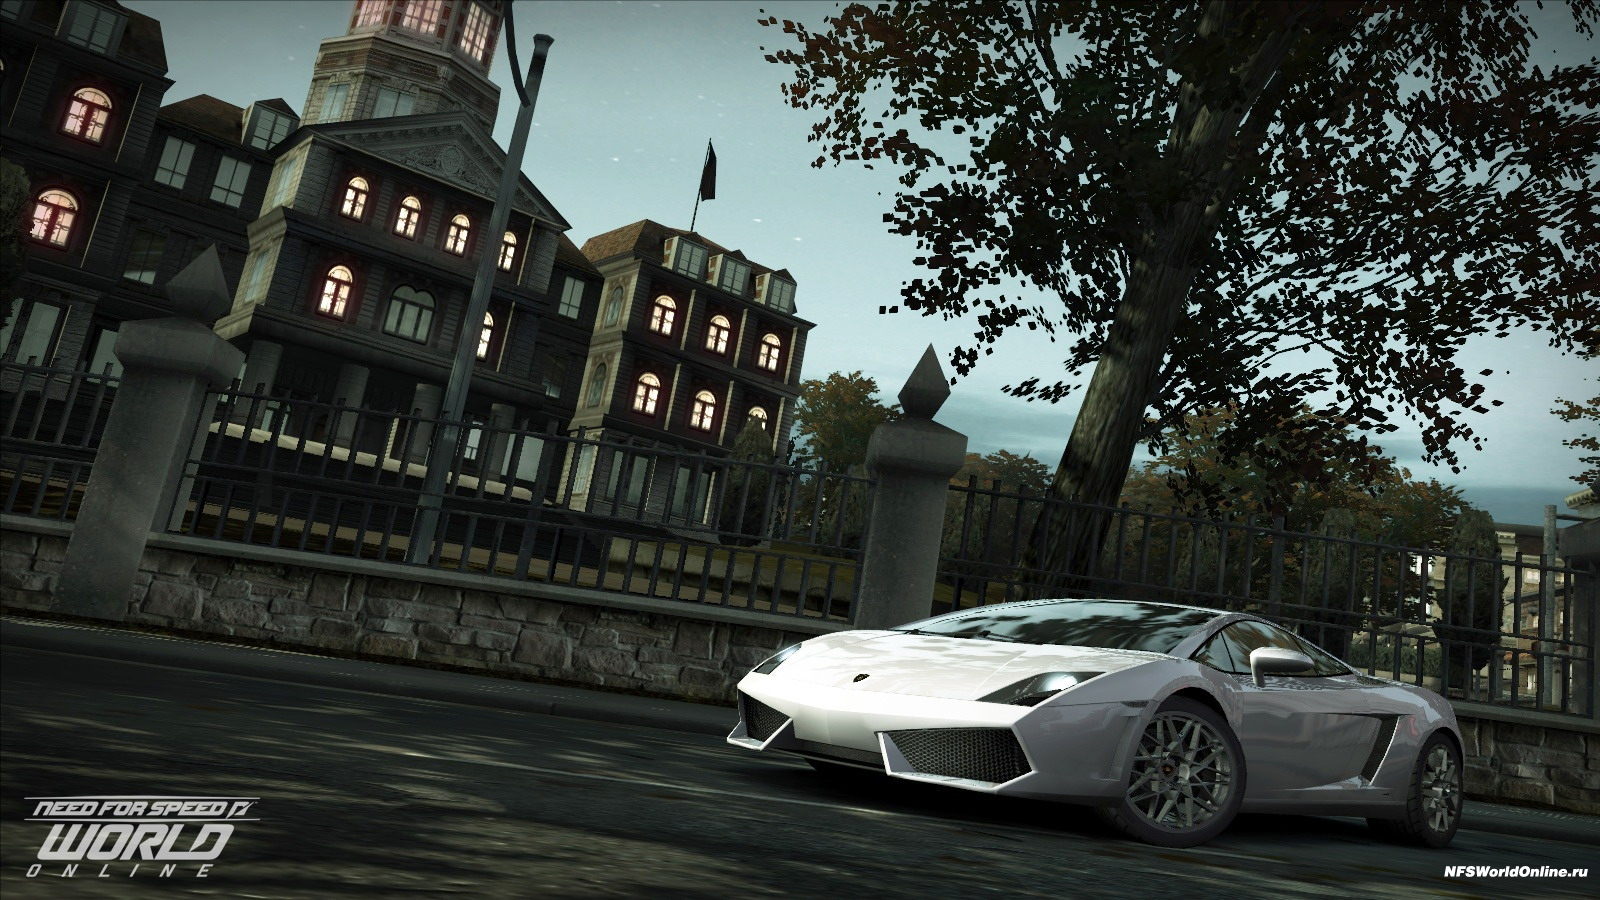 Need for Speed: World Online 9d61ac26c4496550f5126fa2c09275b9